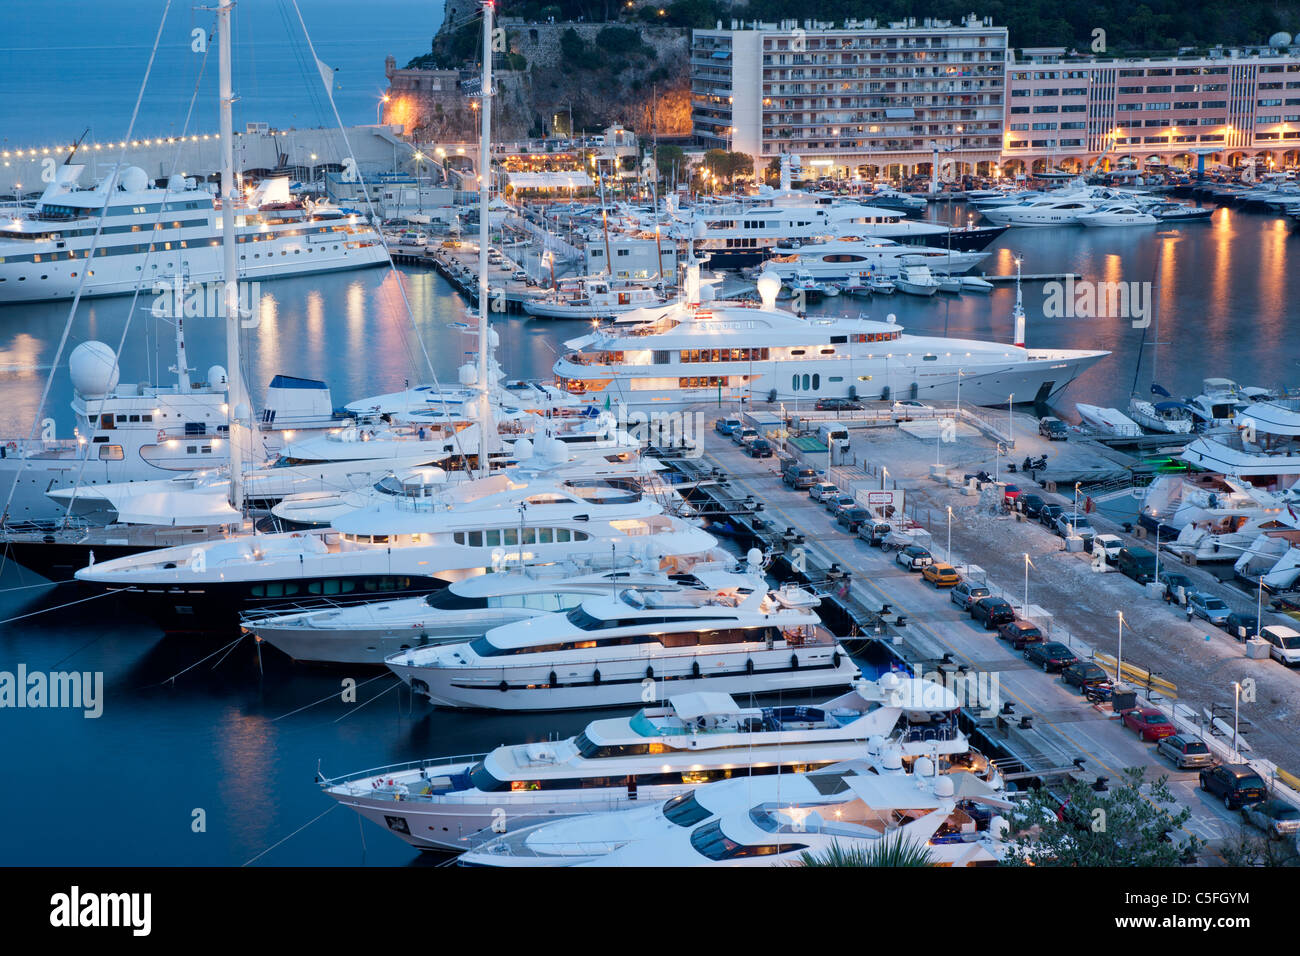 Luxury yachts in the main harbour at dusk, Monte Carlo, Monaco Stock Photo